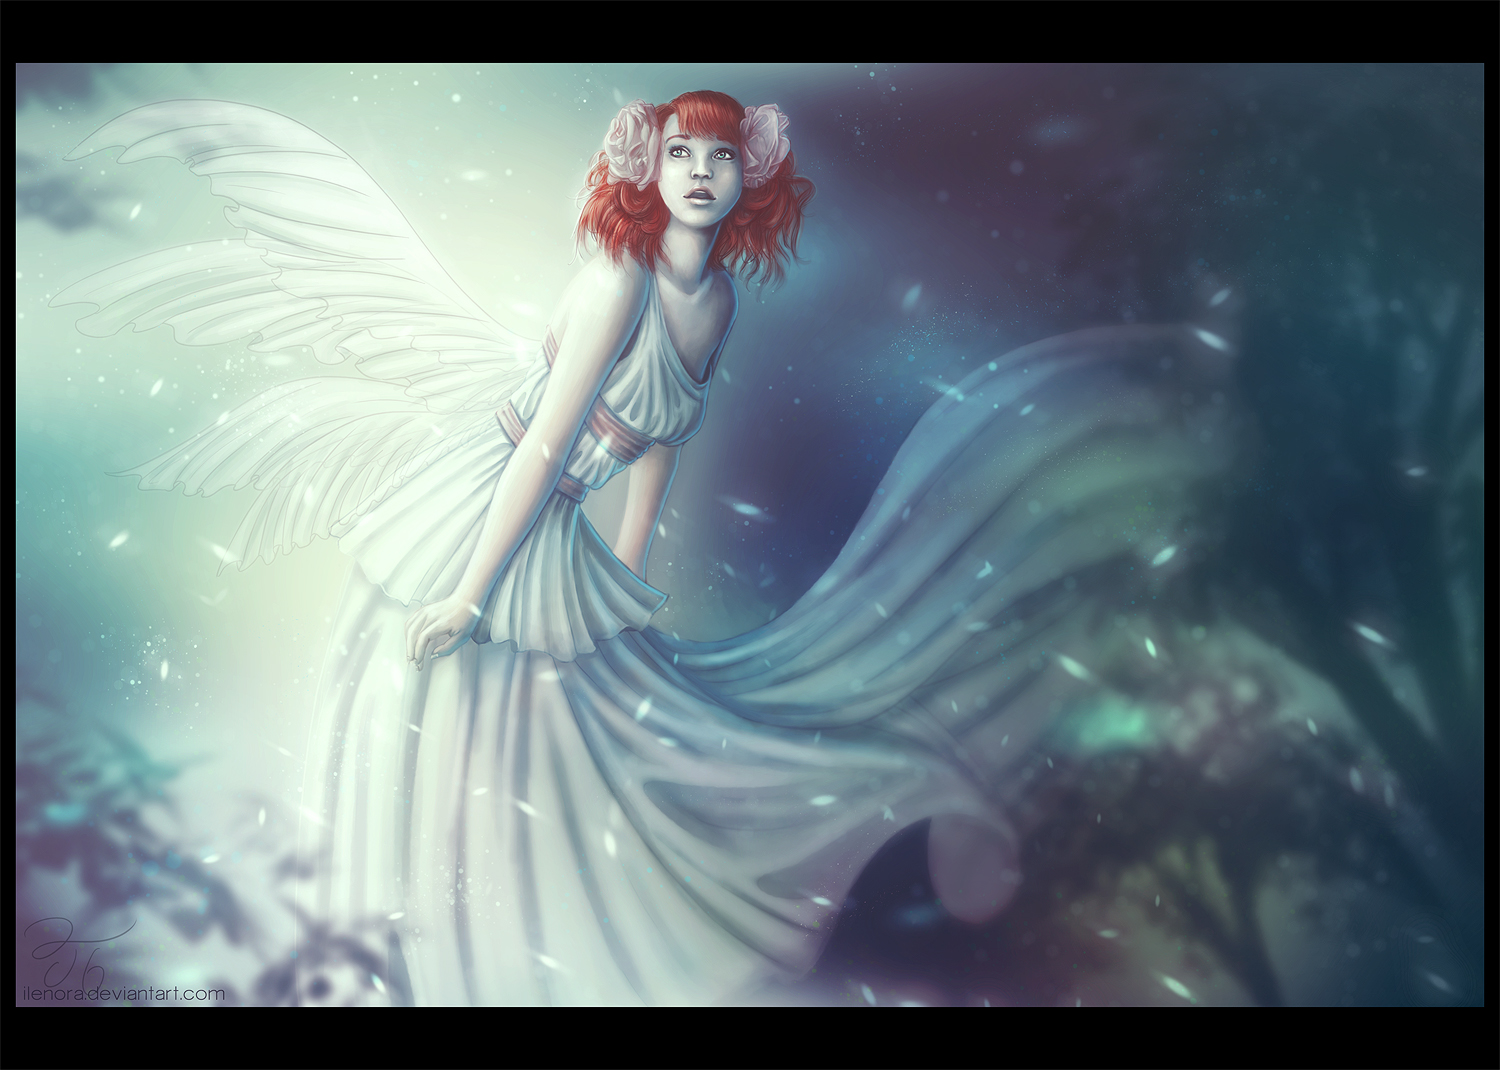 Ethereal by Ilenora